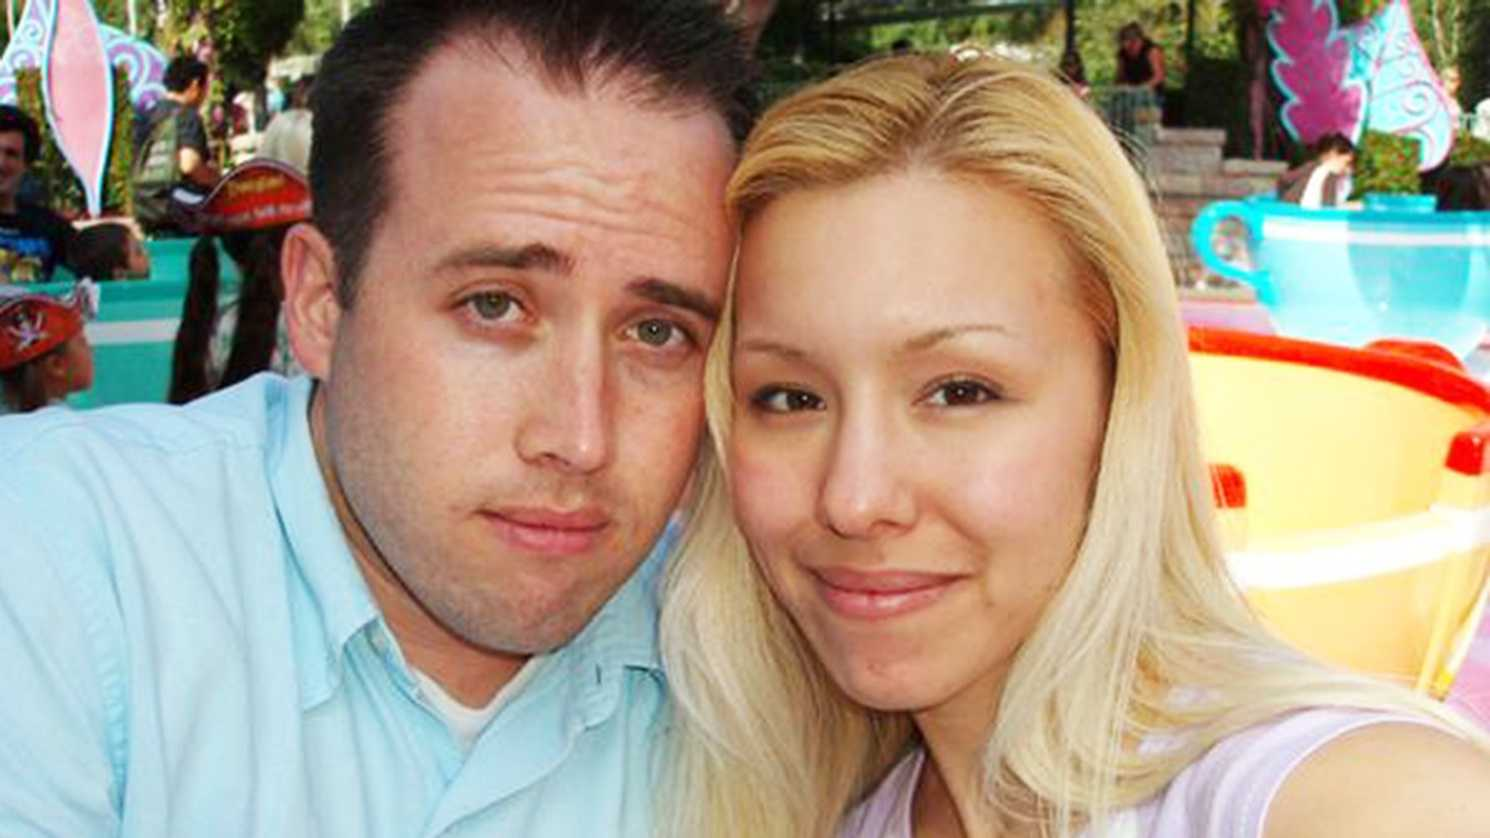 Jodi Arias, right, was convicted of killing ex-boyfriend Travis Alexander, left.